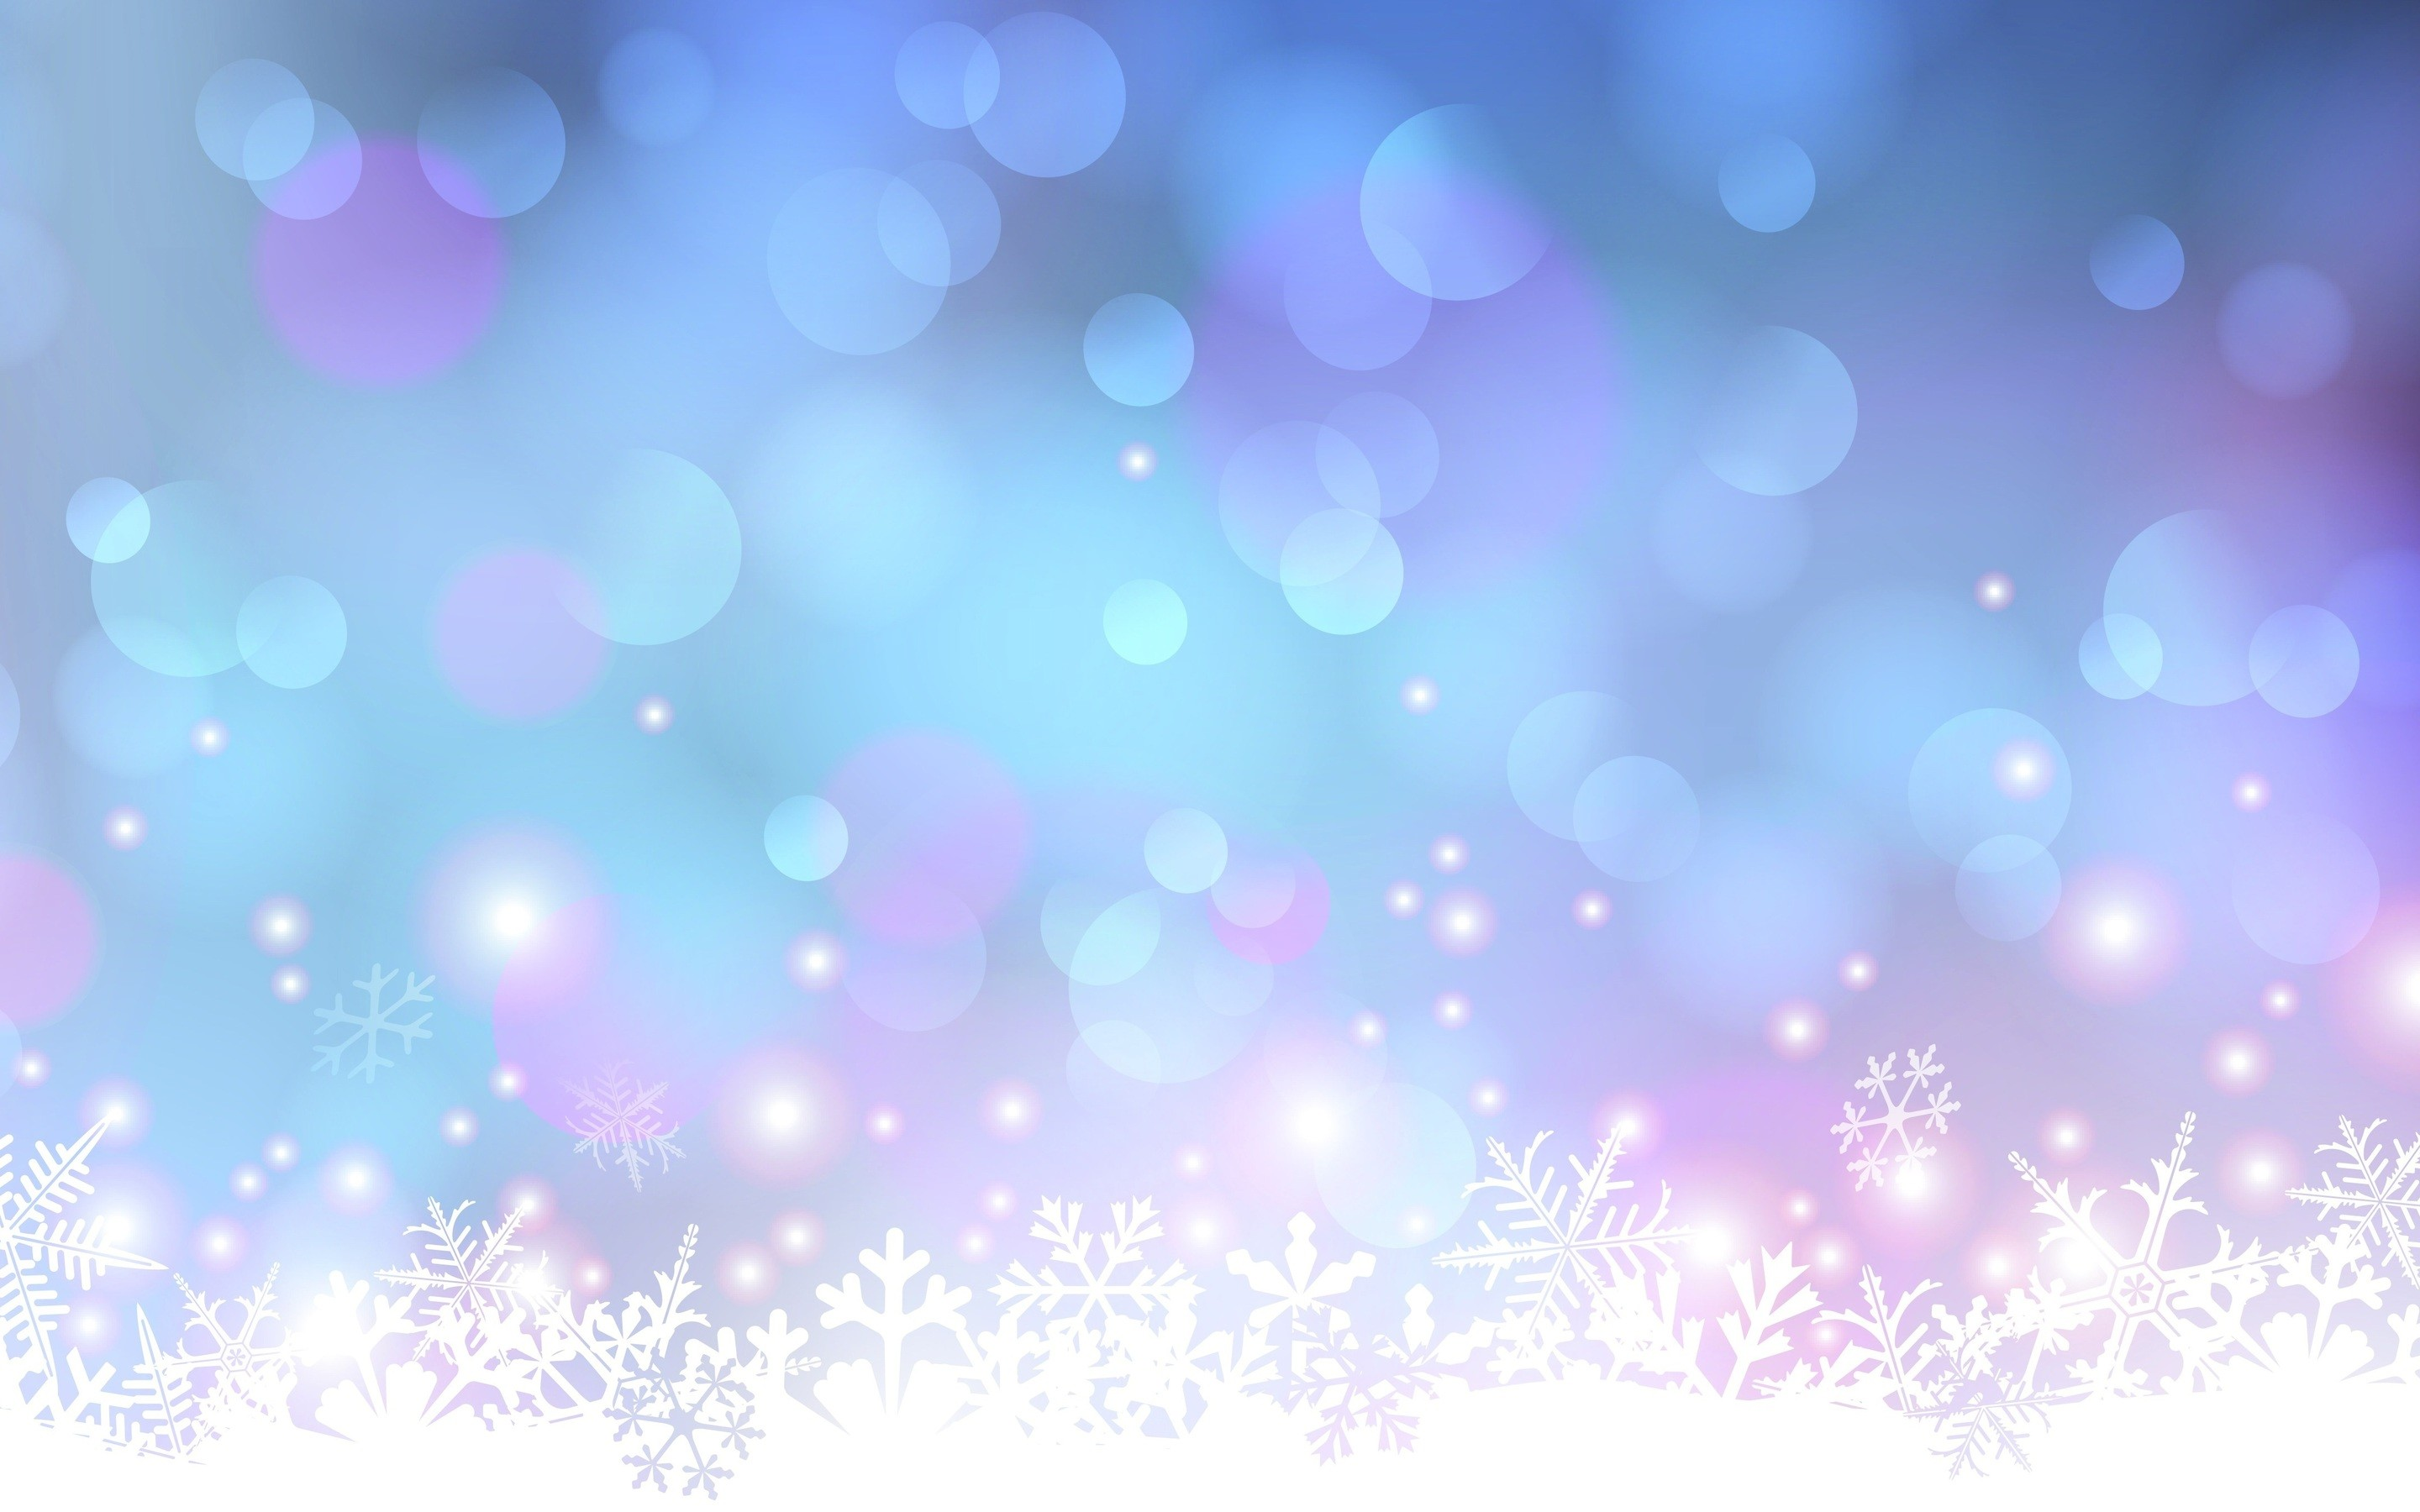 Holiday Desktop Wallpapers and Backgrounds